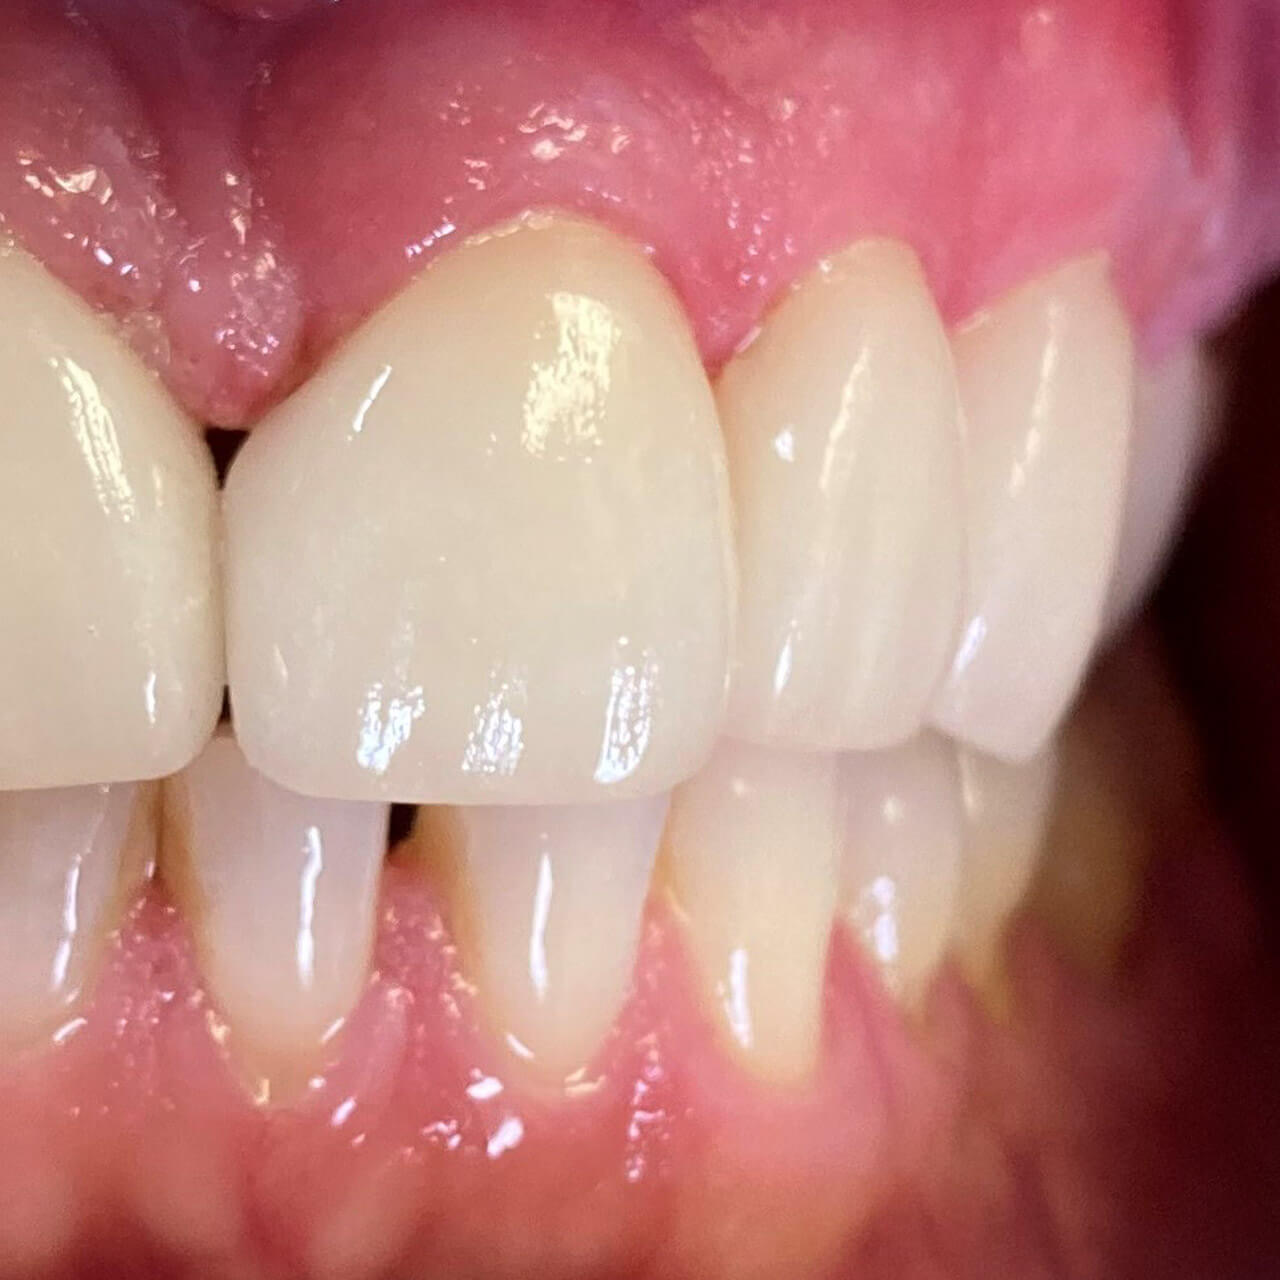 Patient receiving dental bonding treatment to correct minor dental imperfections